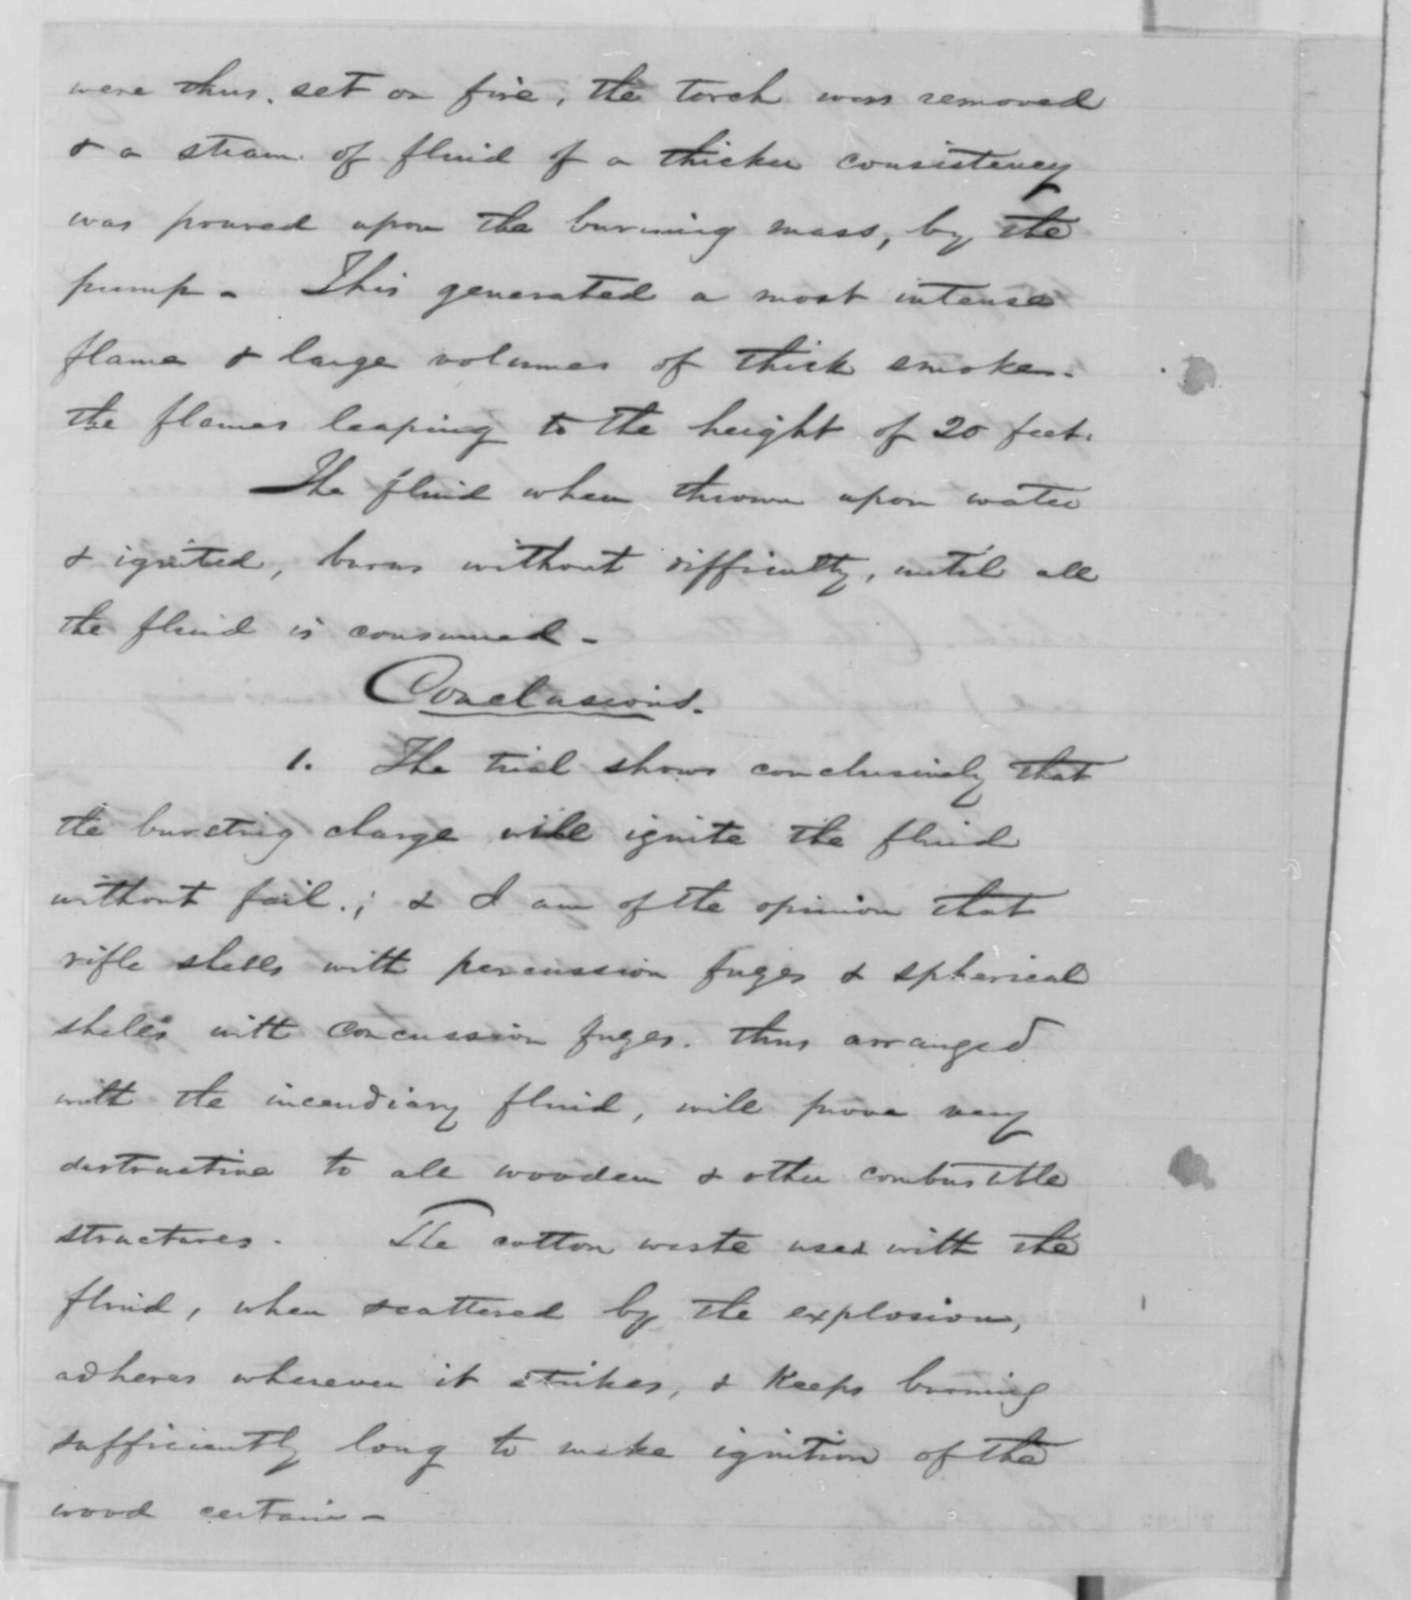 Stephen V. Benet to James W. Ripley, Friday, April 10, 1863  (Results of tests conducted on incendiary shells)